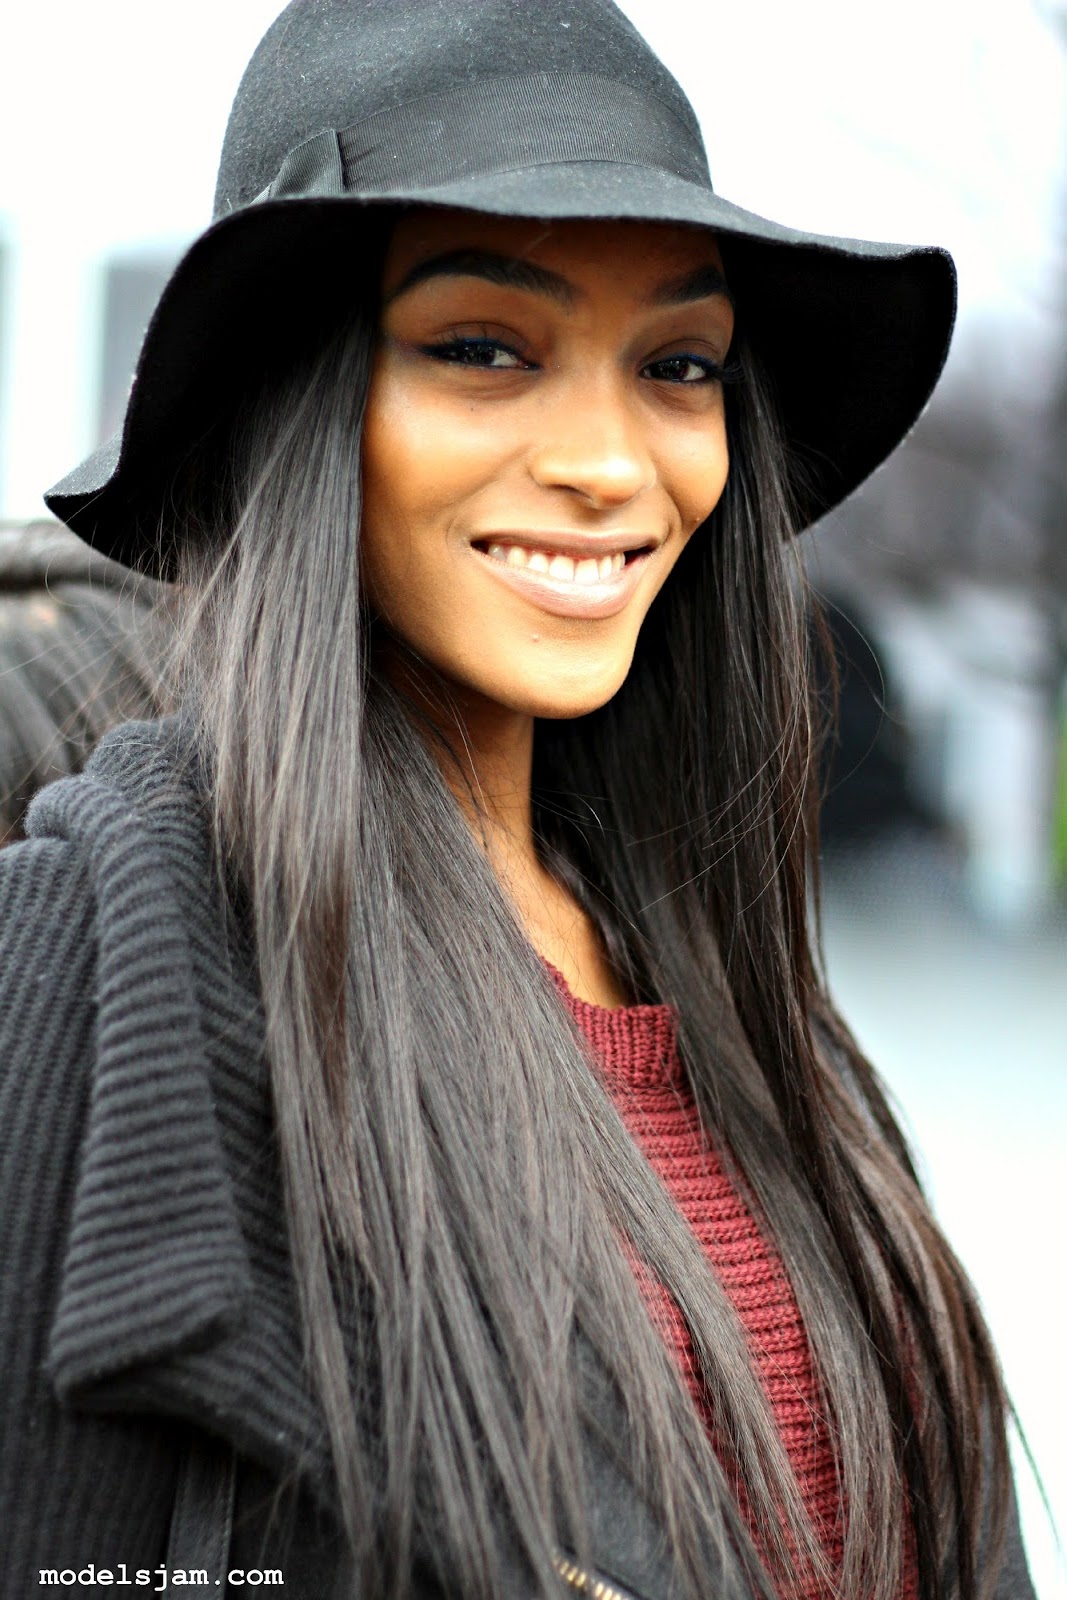 jourdan dunn black British fashion model, zanjoo